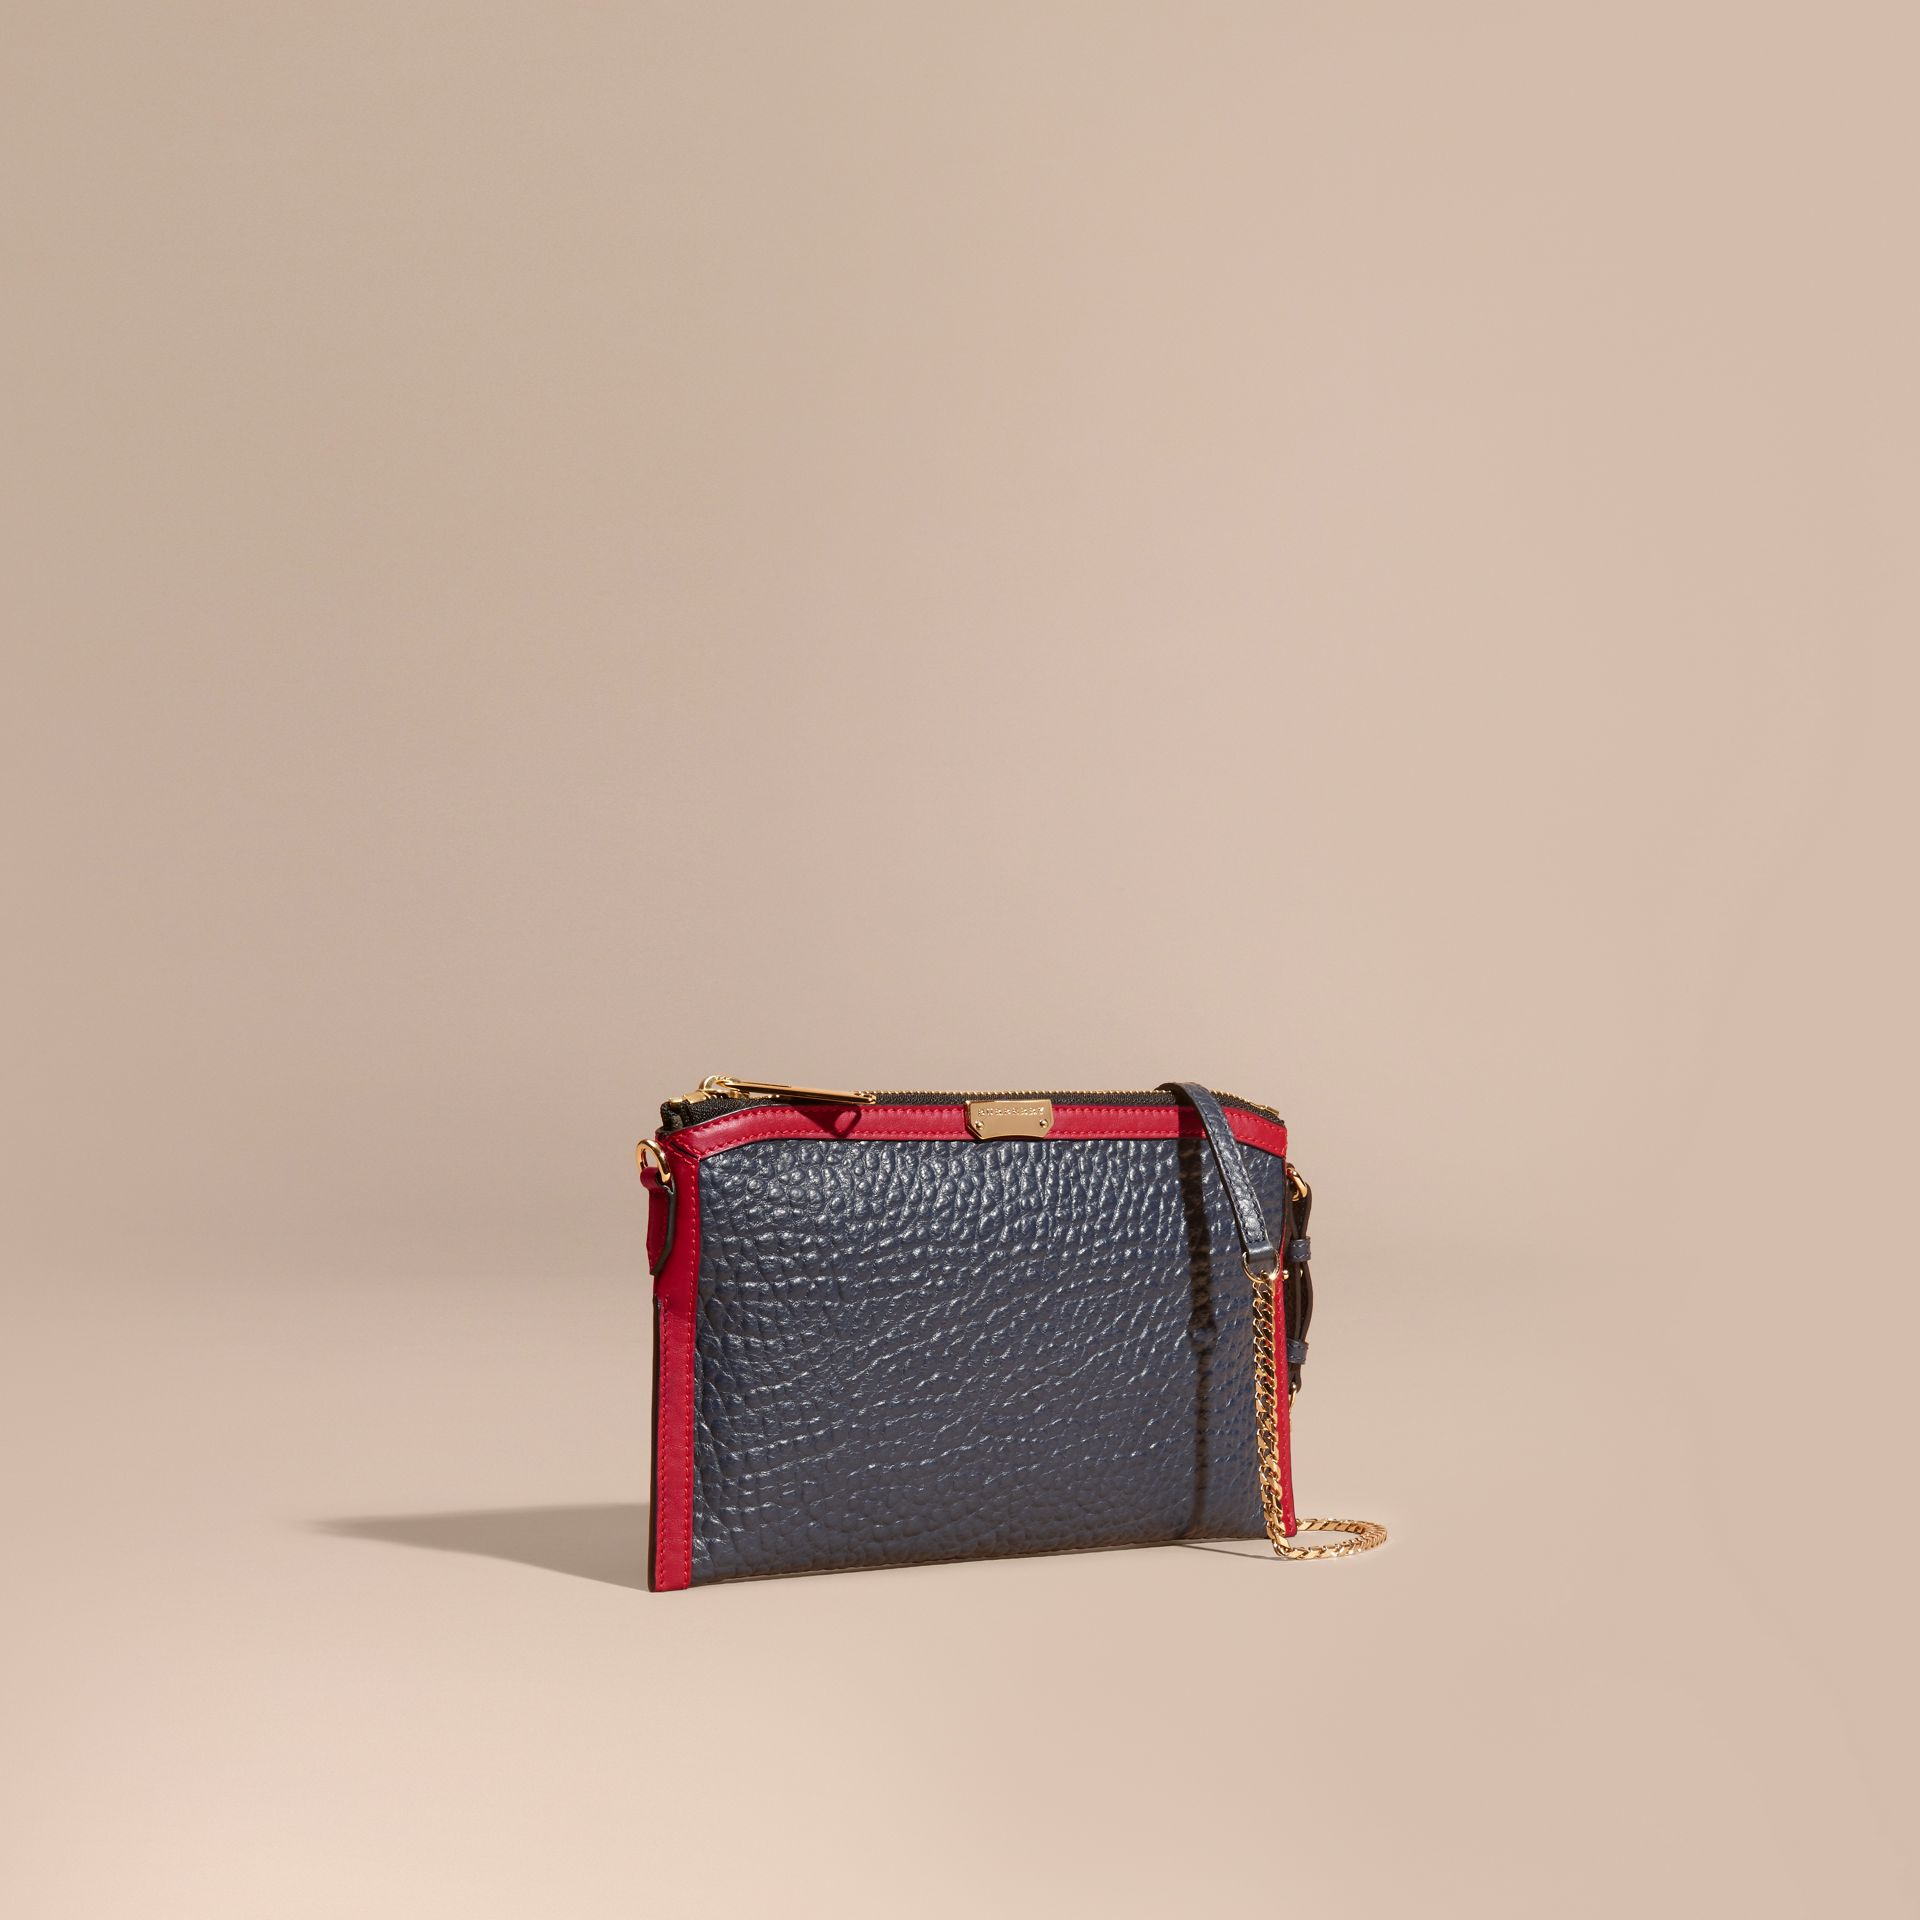 Blue crbn/parade red Contrast Border Signature Grain Leather Clutch Bag - gallery image 1